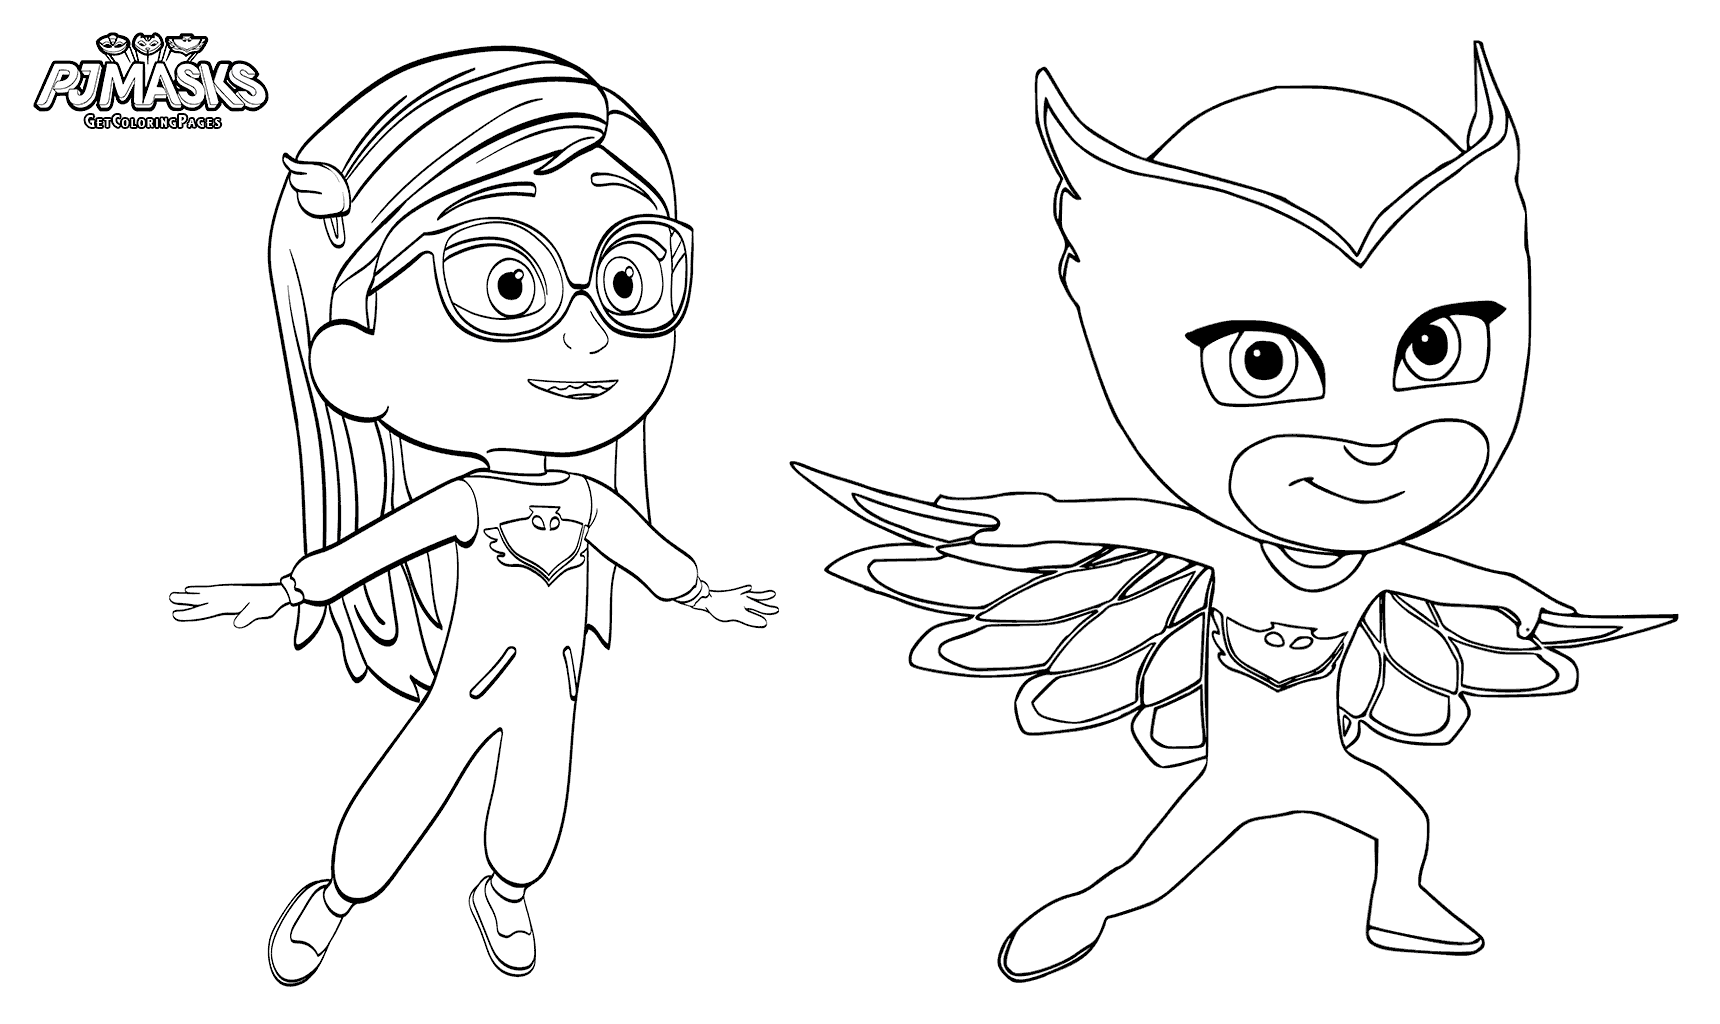 Amaya As Owlett PJ Masks Coloring Page